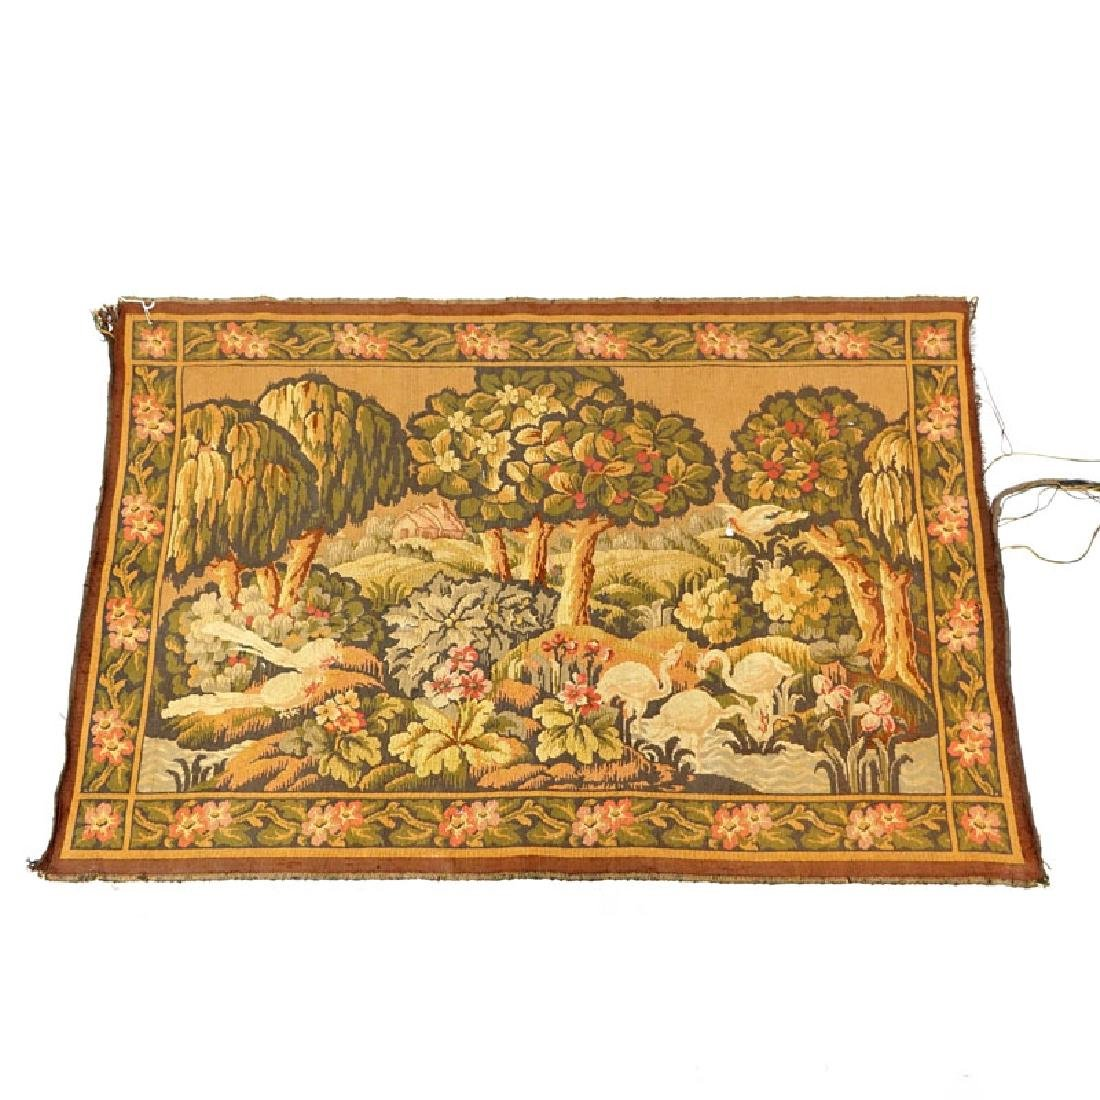 Late 19th Century French Tapestry. Depicts a landscape